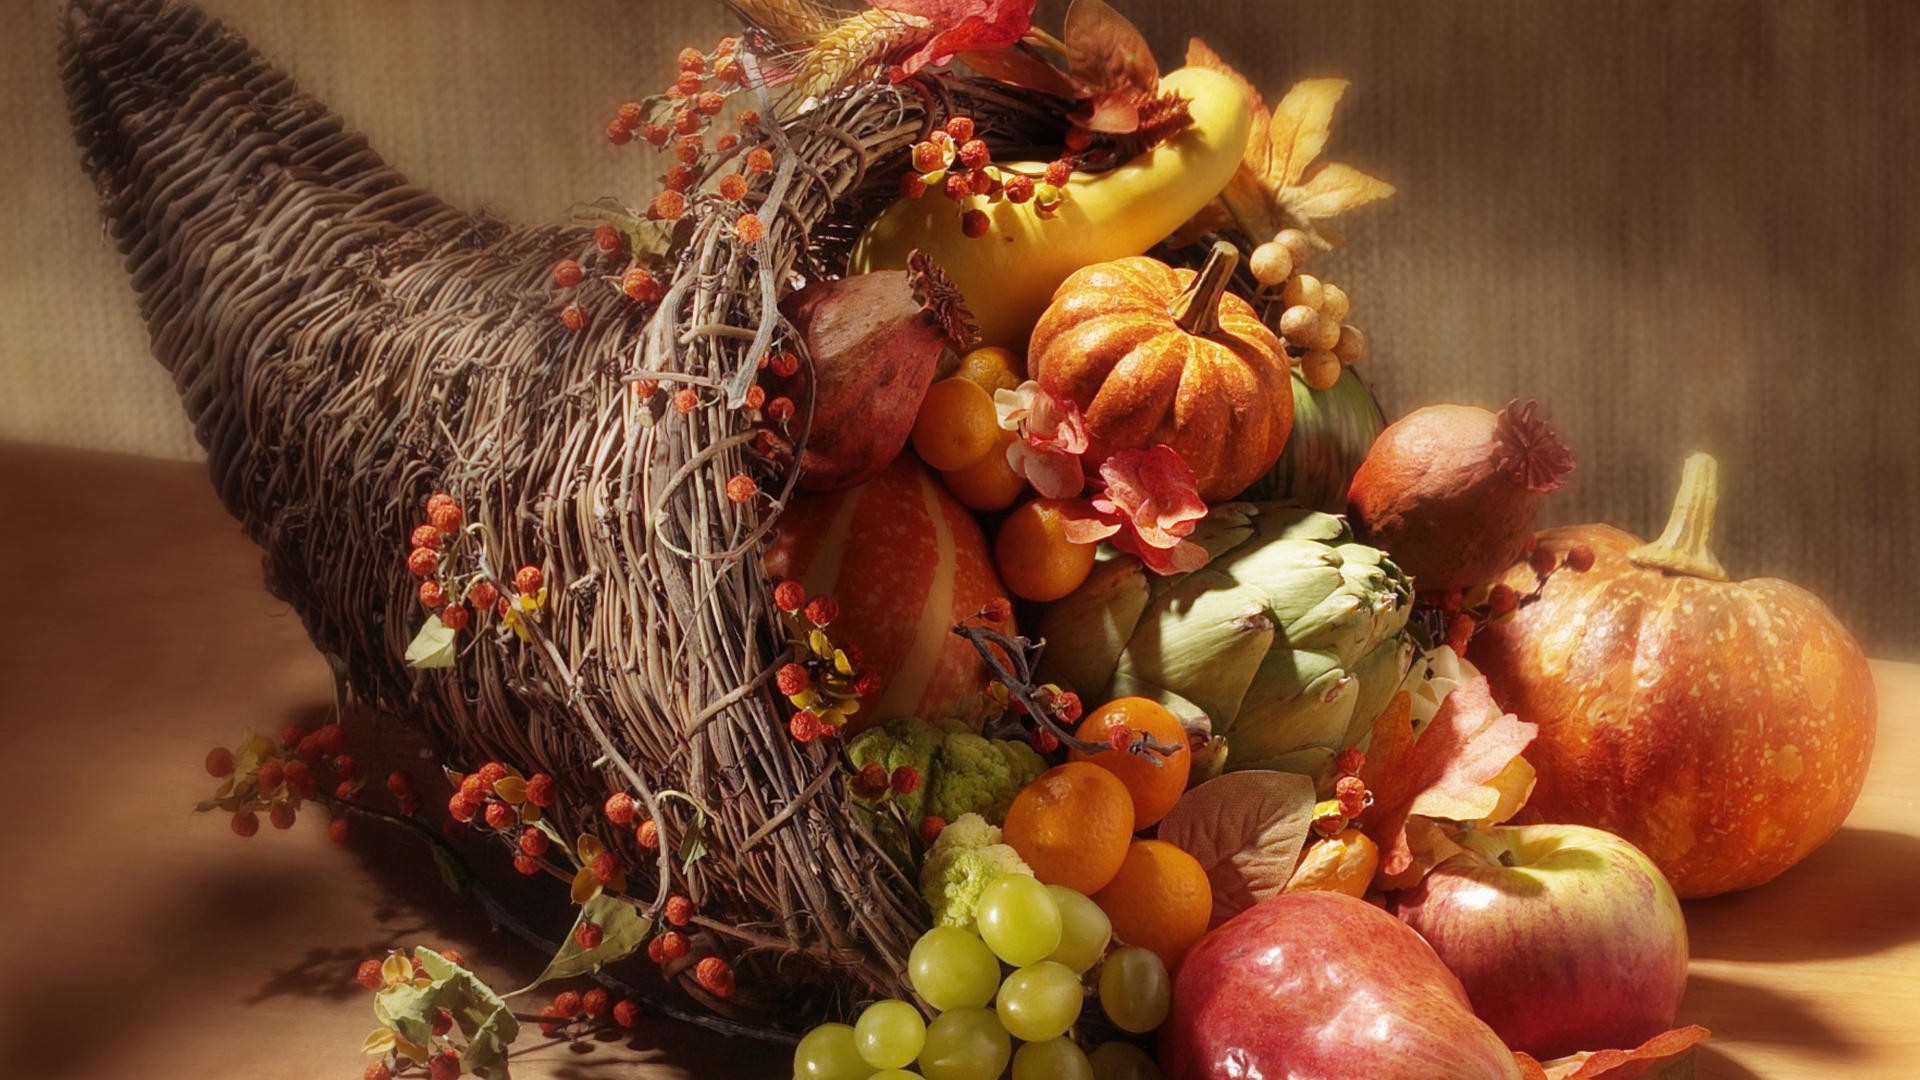 1920x1080 thanksgiving wallpaper: Thanksgiving HD Wallpaper Widescreen